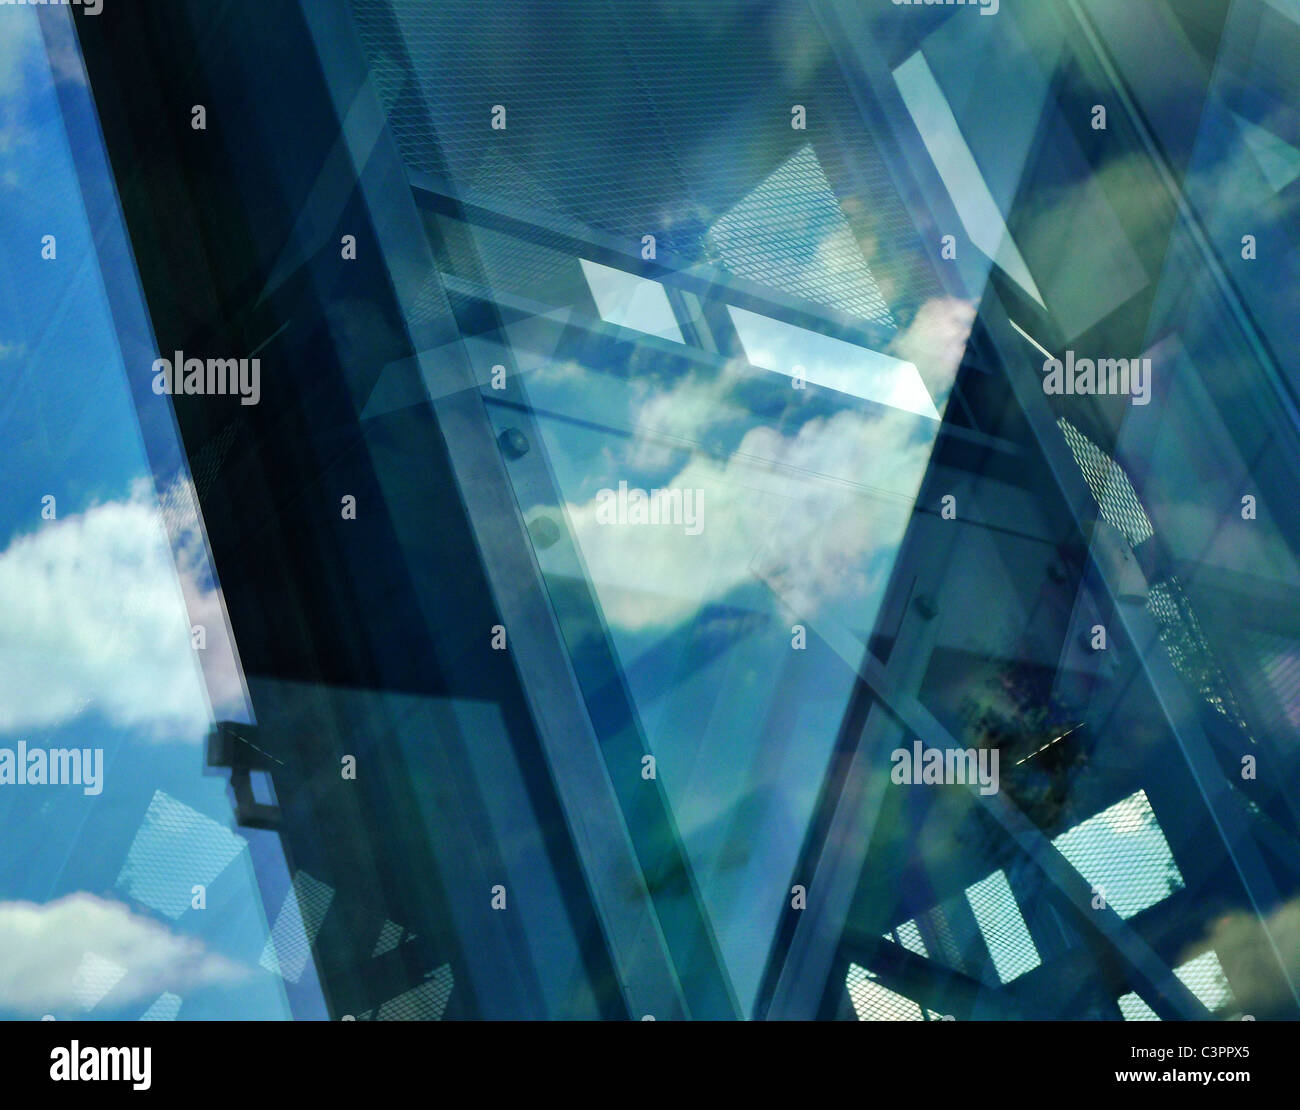 Abstract reflecting architectural composition. Stock Photo